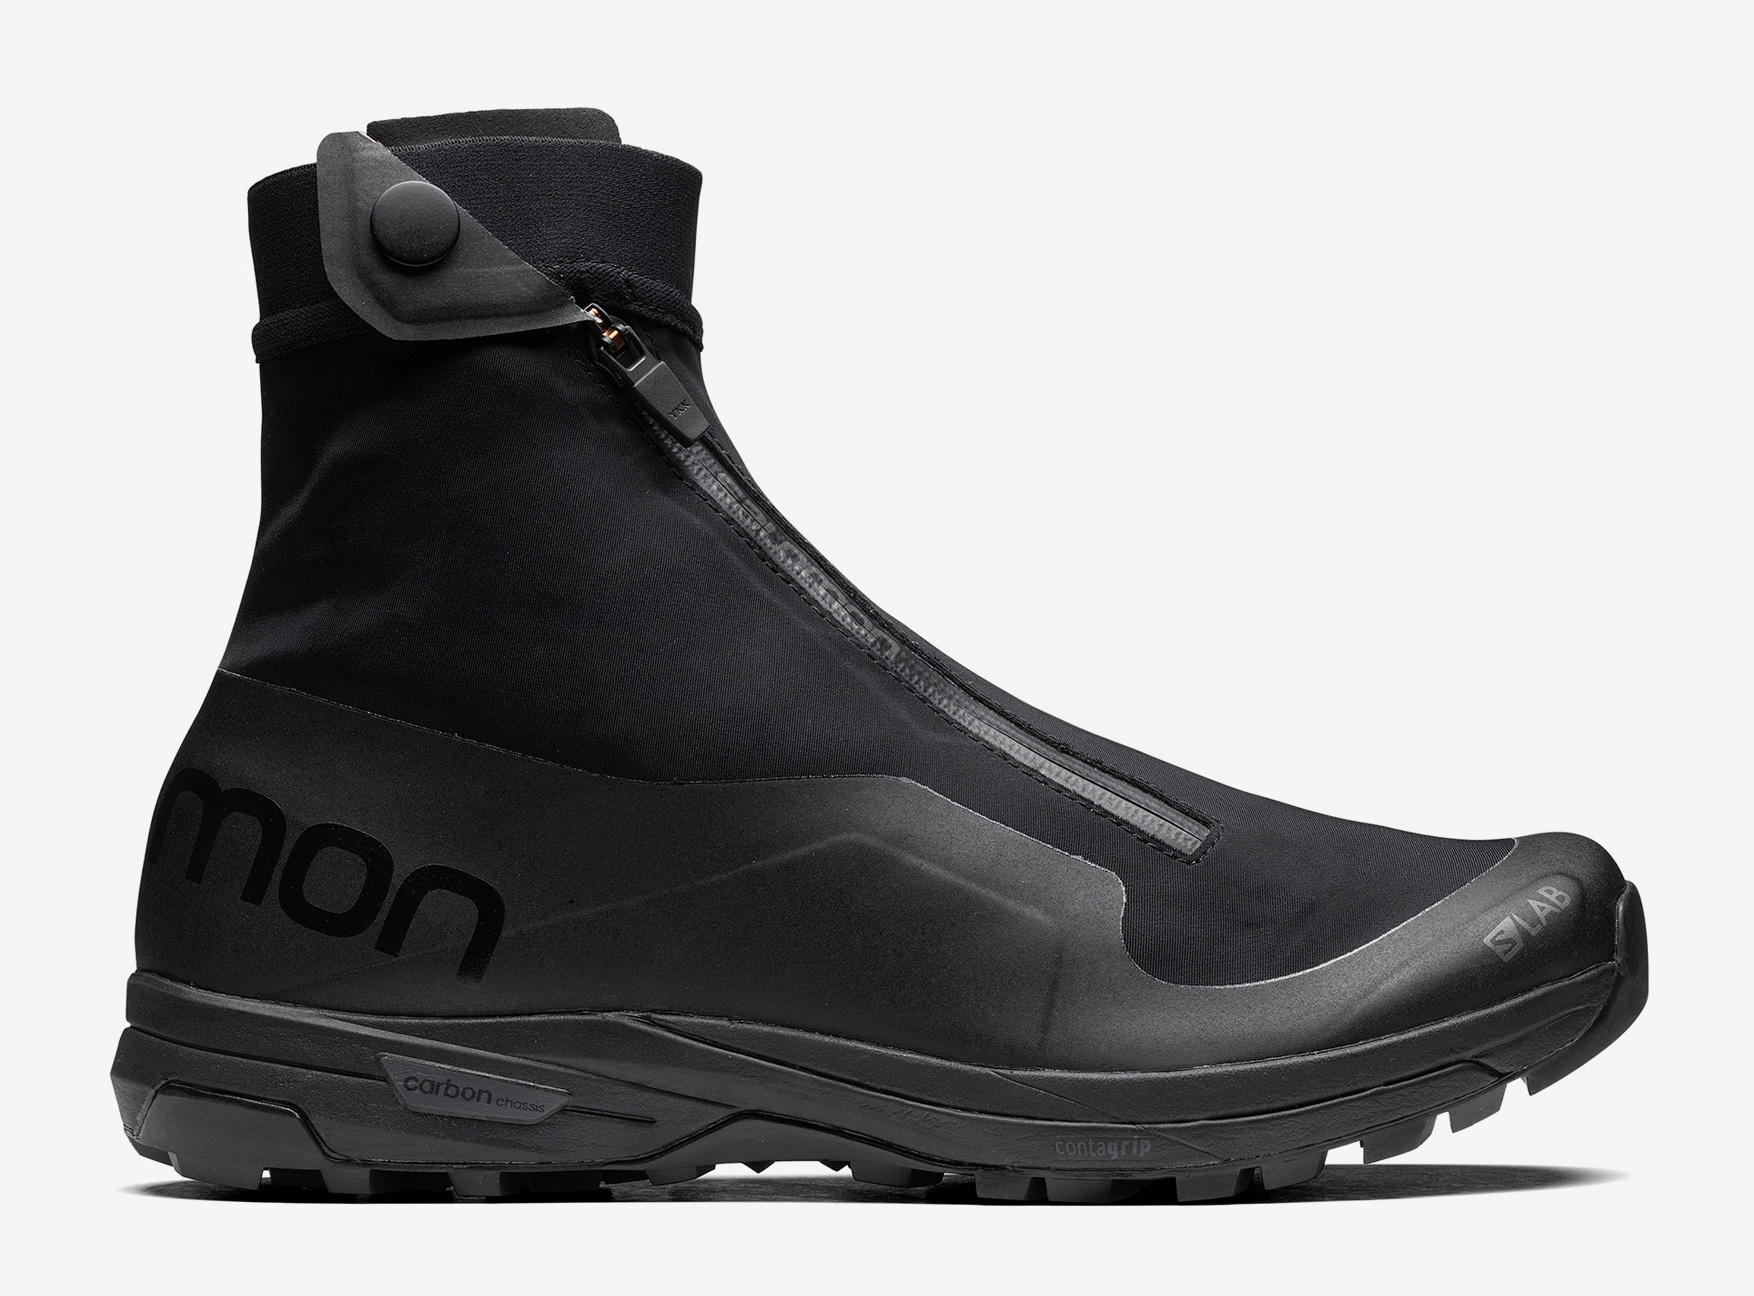 Salomon Has You Covered for Winter Running at werd.com